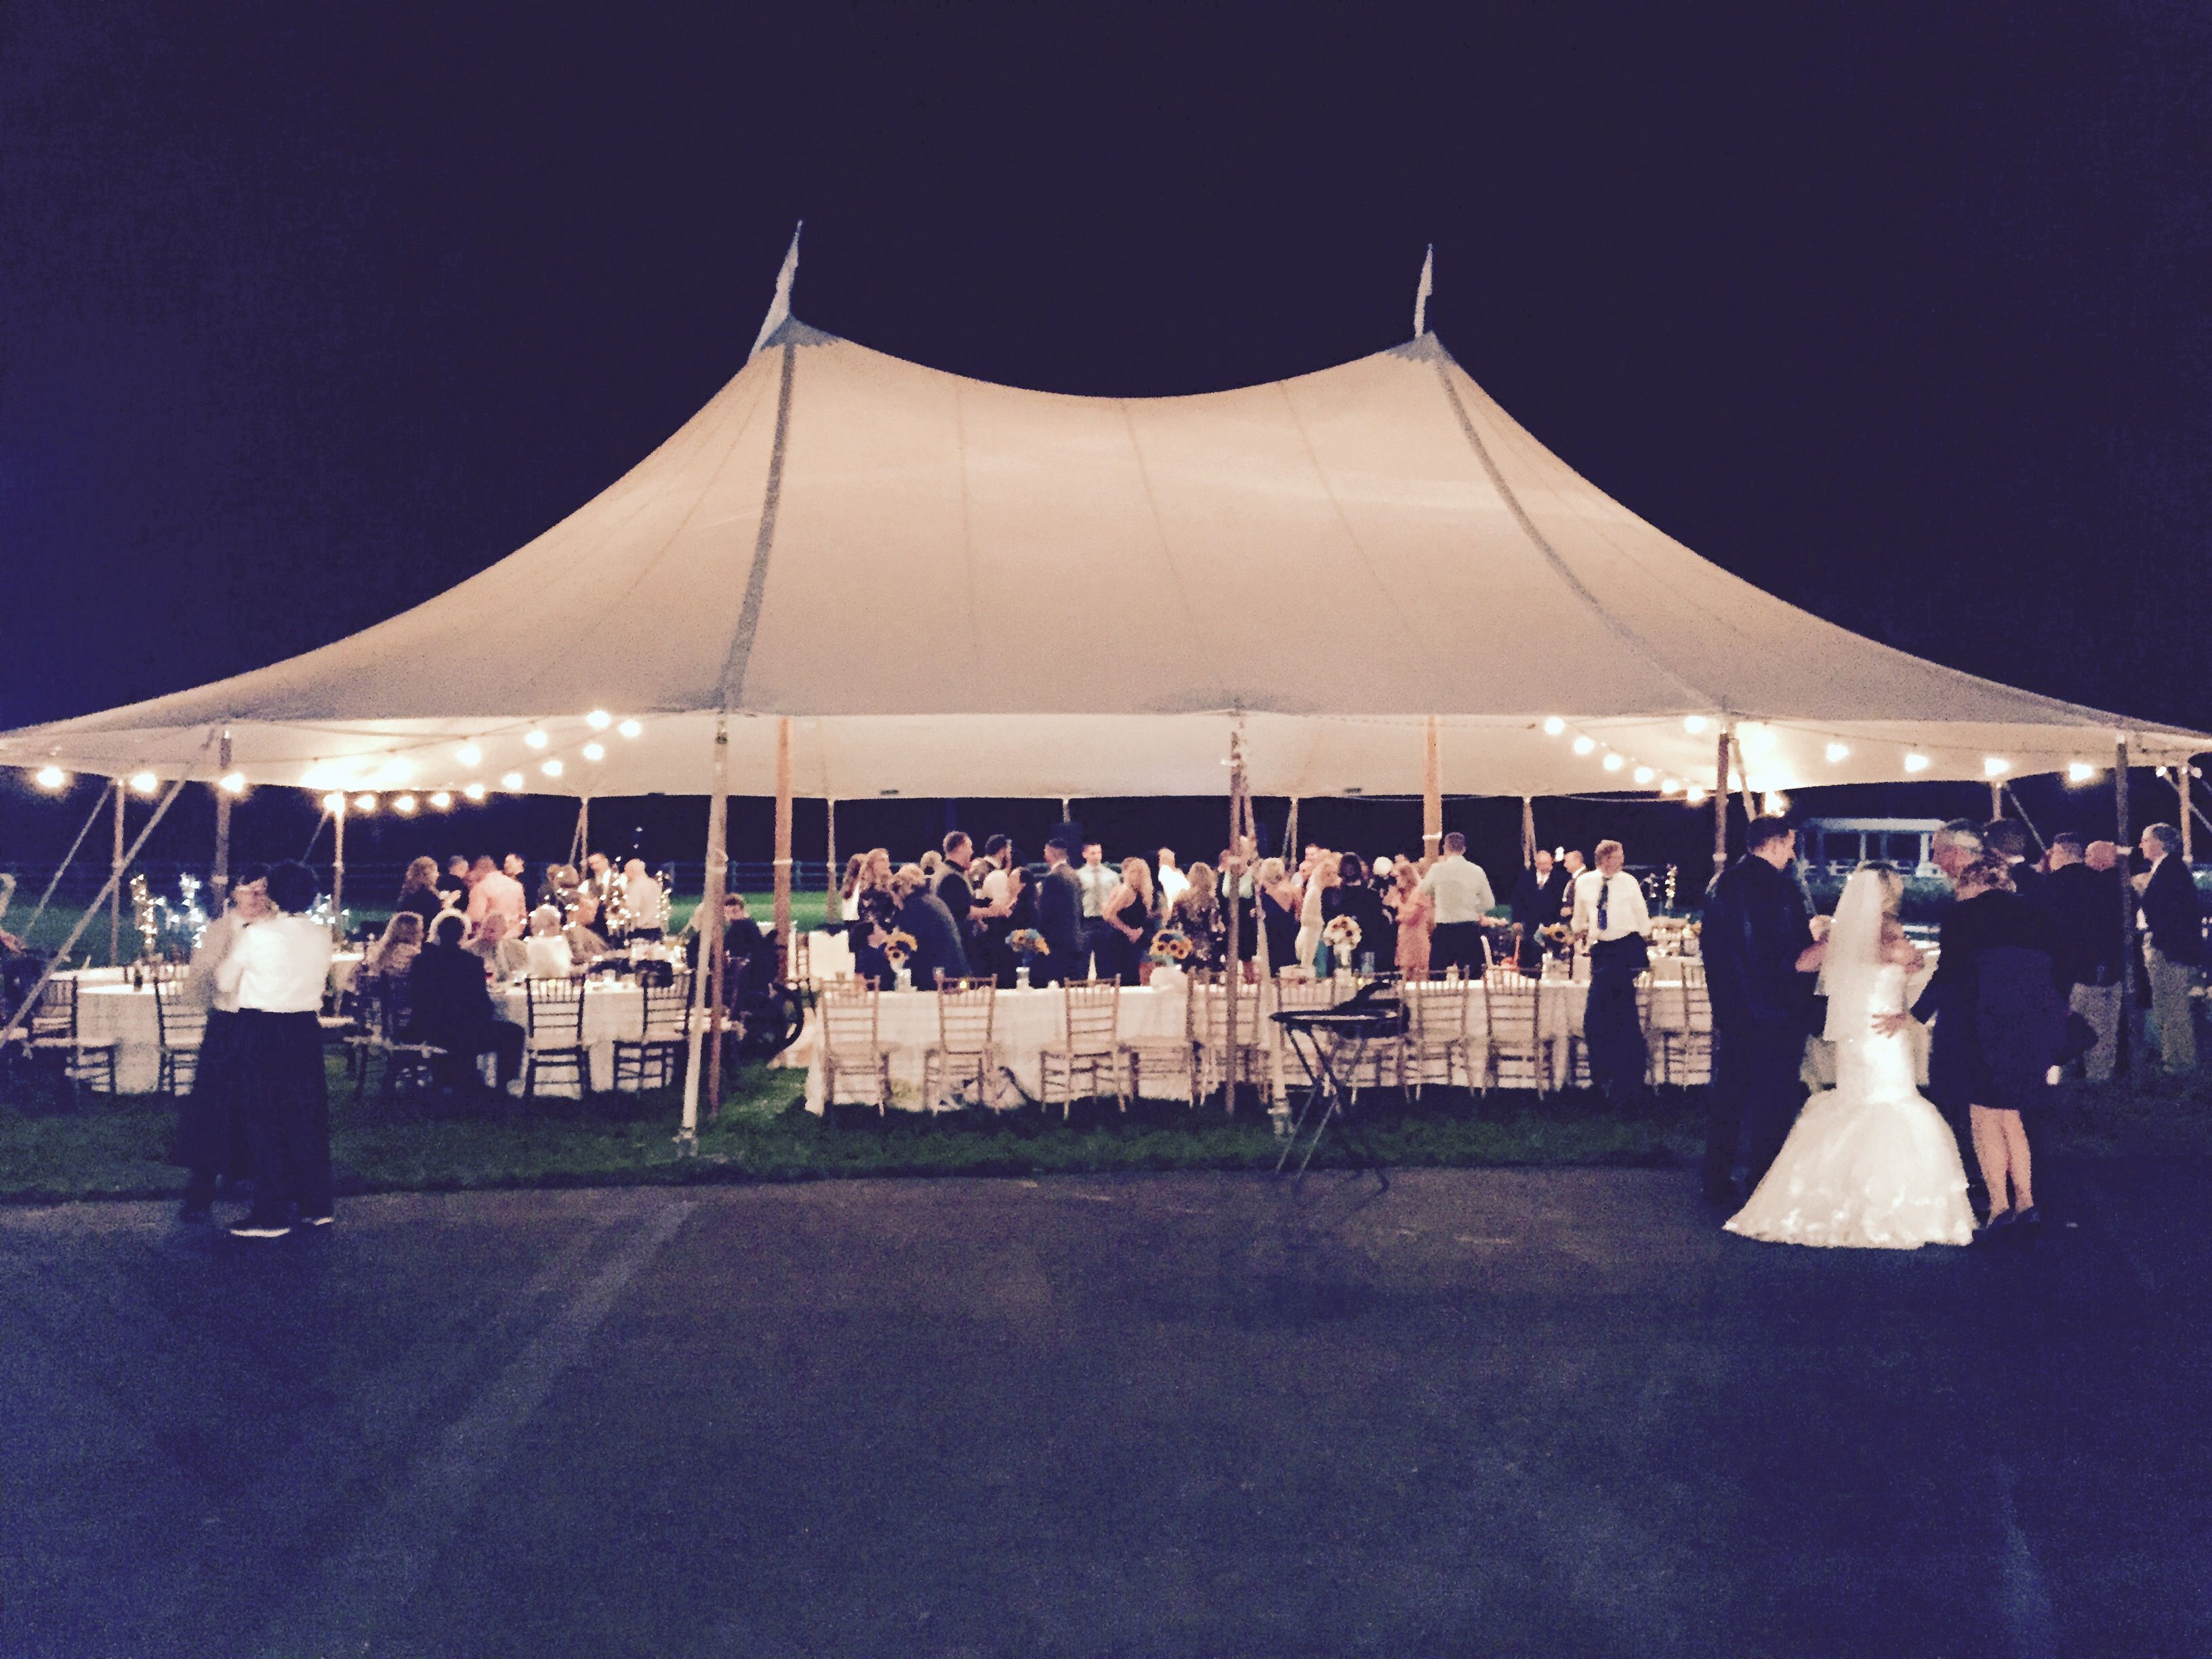 Farm Wedding Venue In New Jersey At DiMeo Farms Which Hosts The Best South Weddings